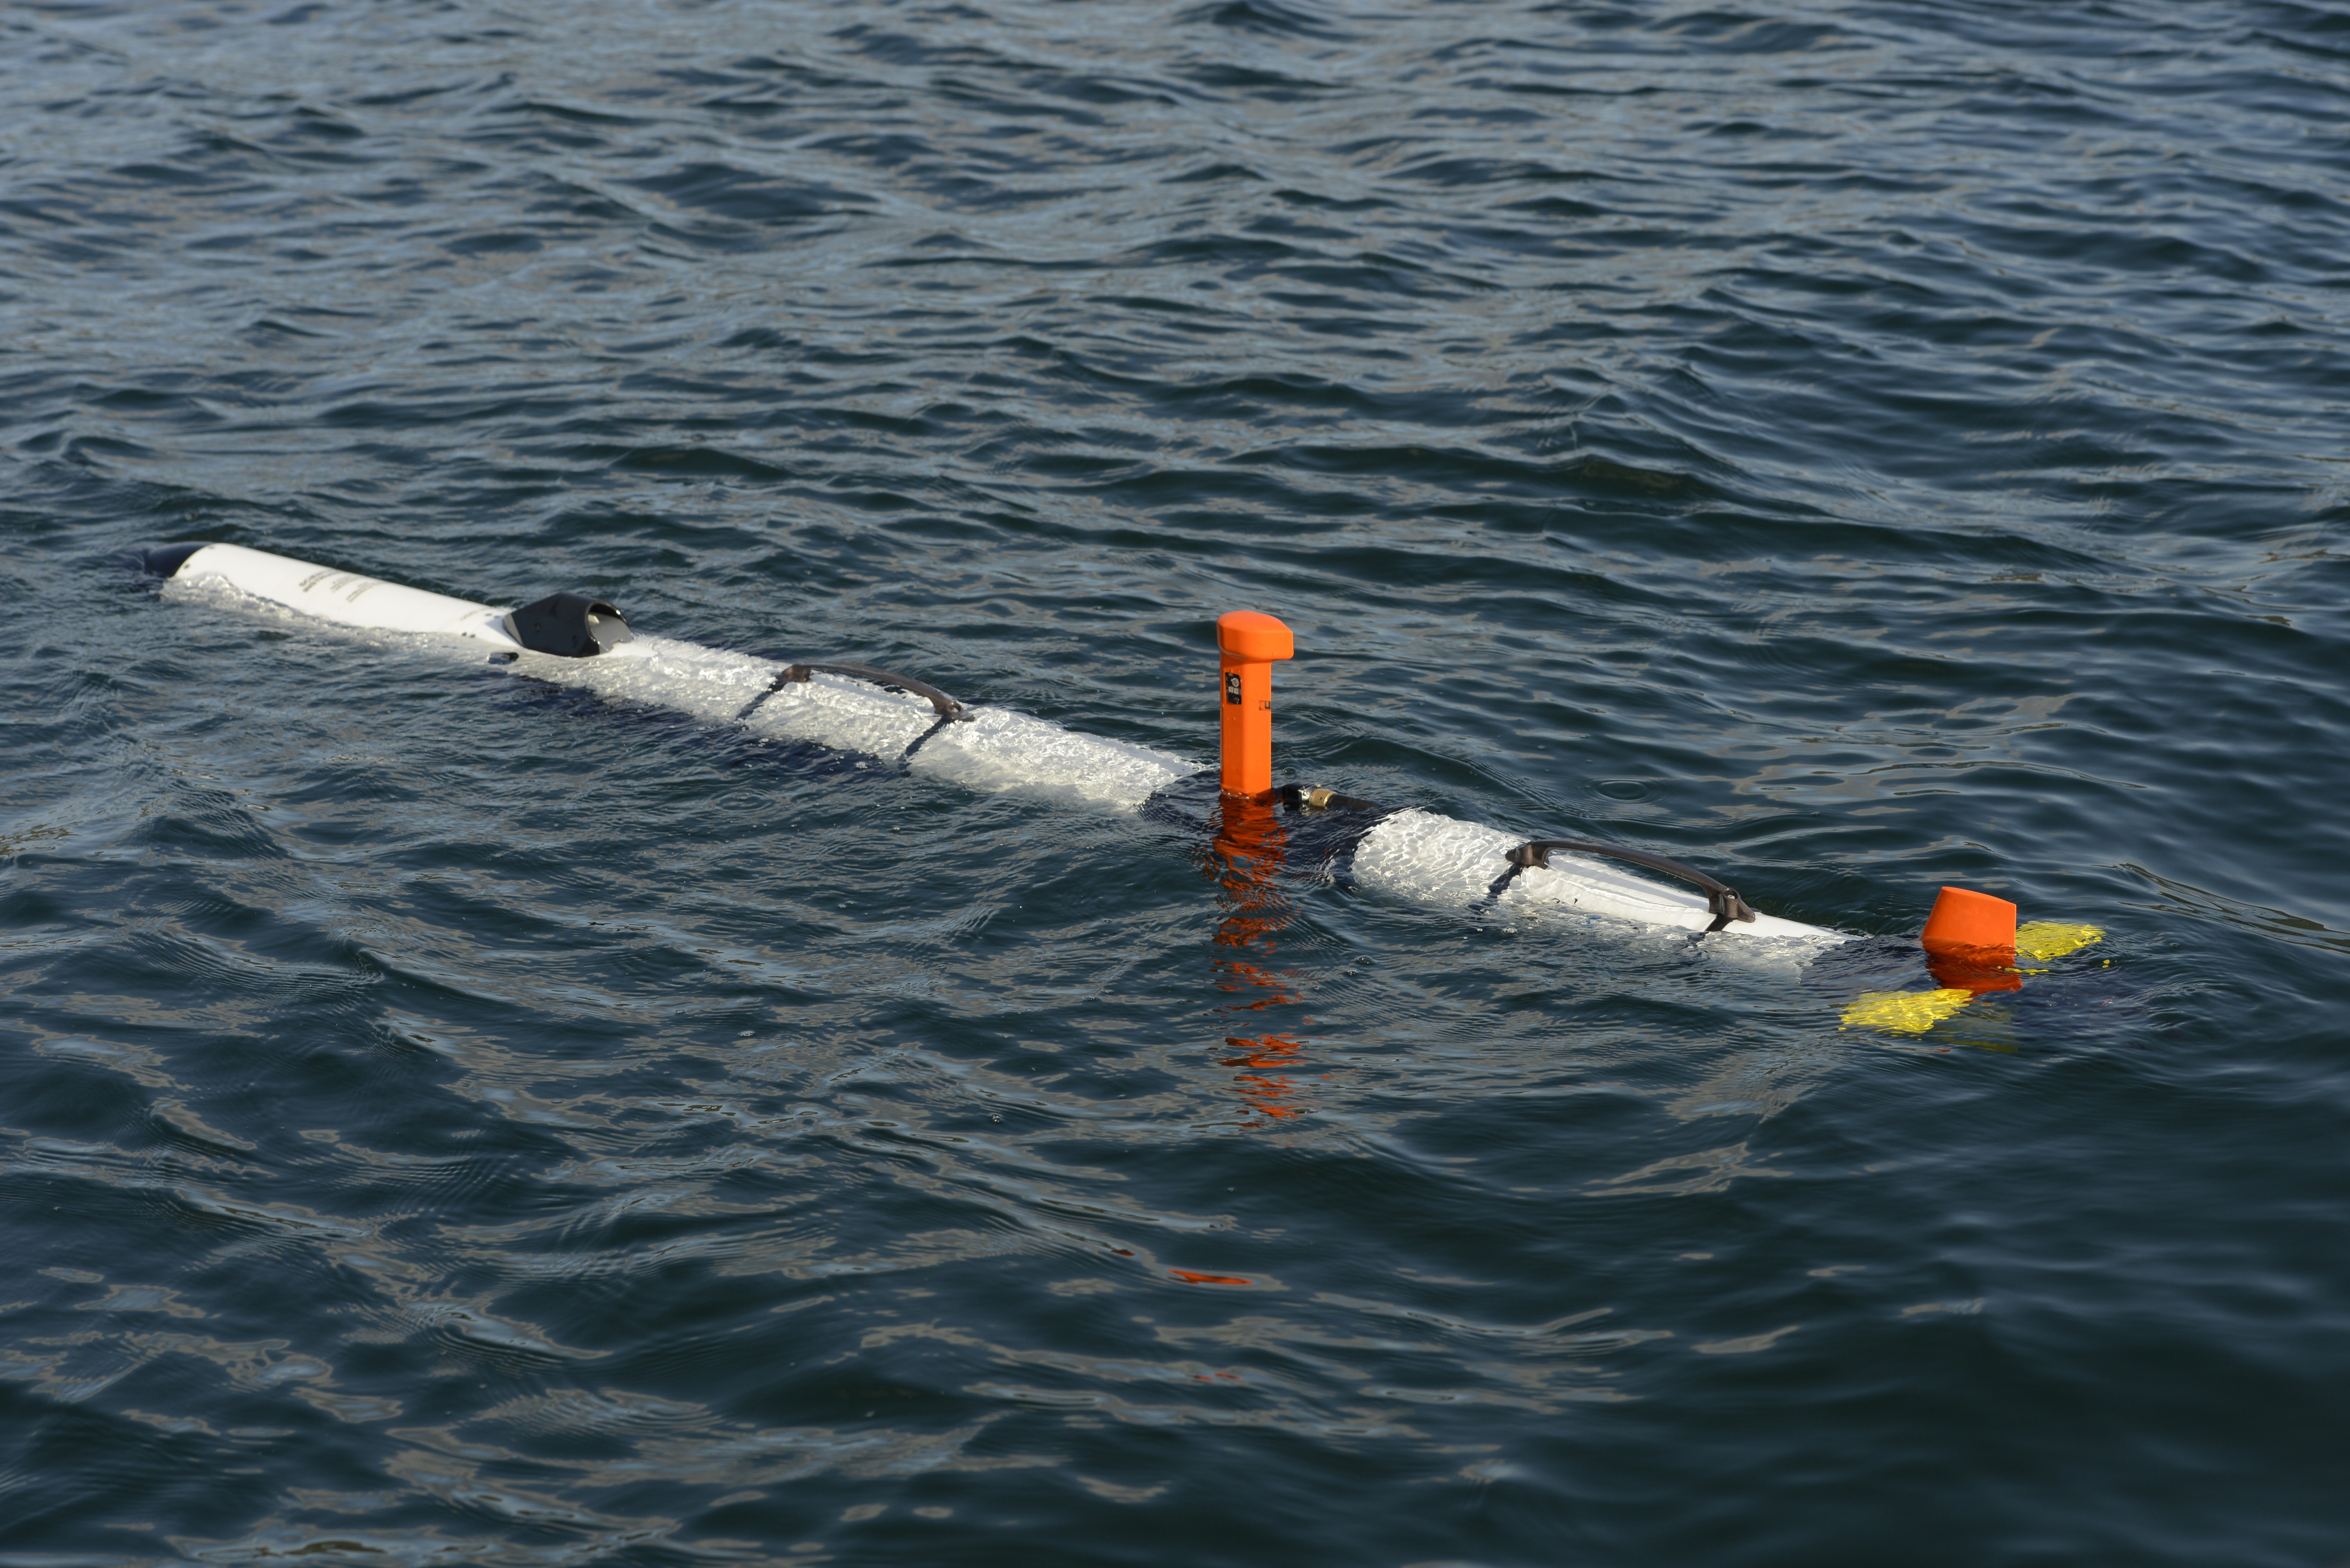 The Iver3 unmanned underwater vehicle waits on the surface before the start of an autonomous mission. Photo by Janice Lang, DRDC